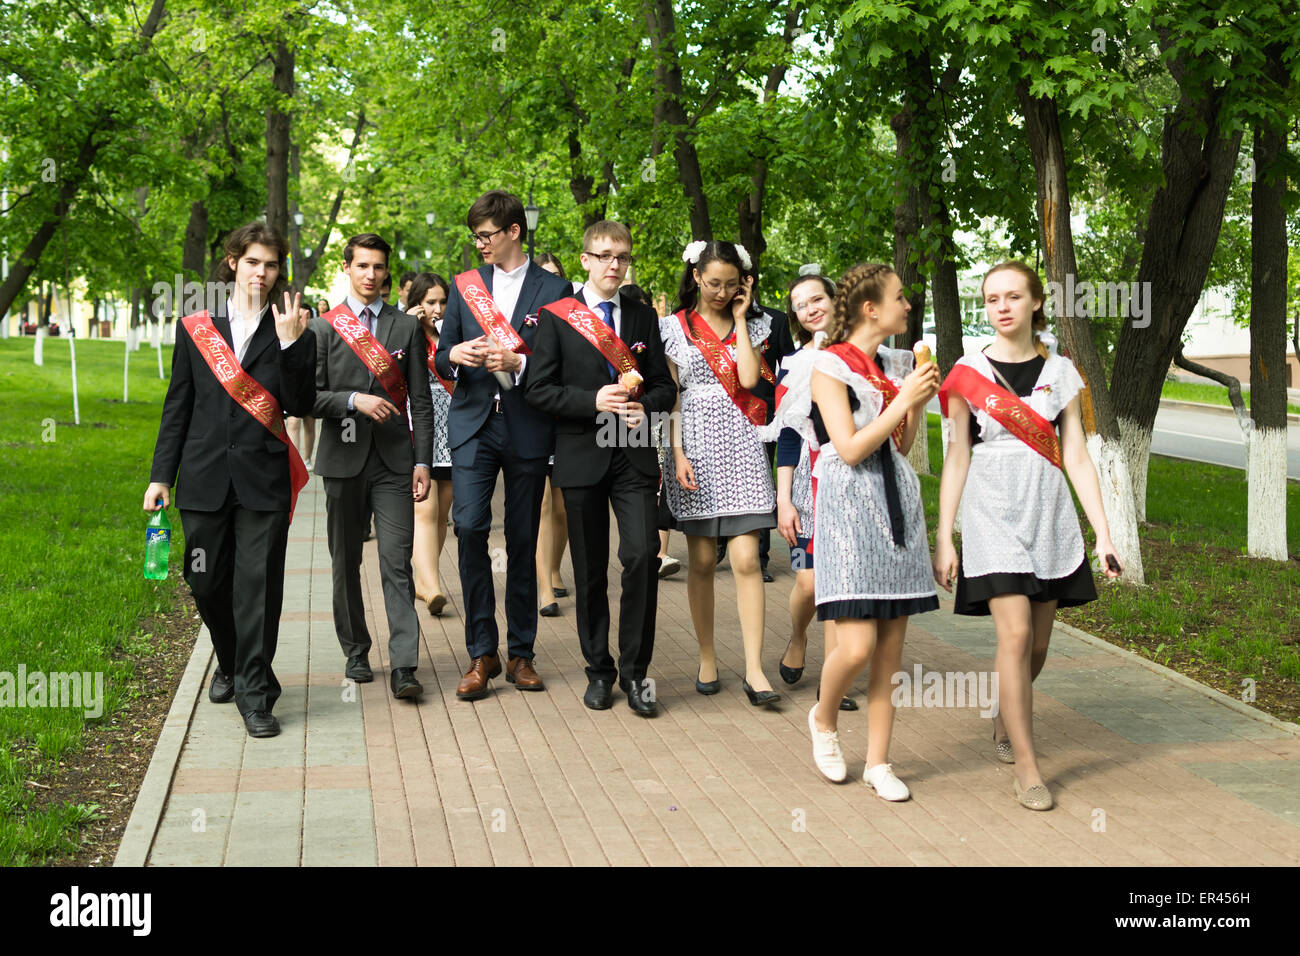 Group of Russian schoolchildren in traditional uniform celebrating graduation from high school in May 2015 - Stock Image